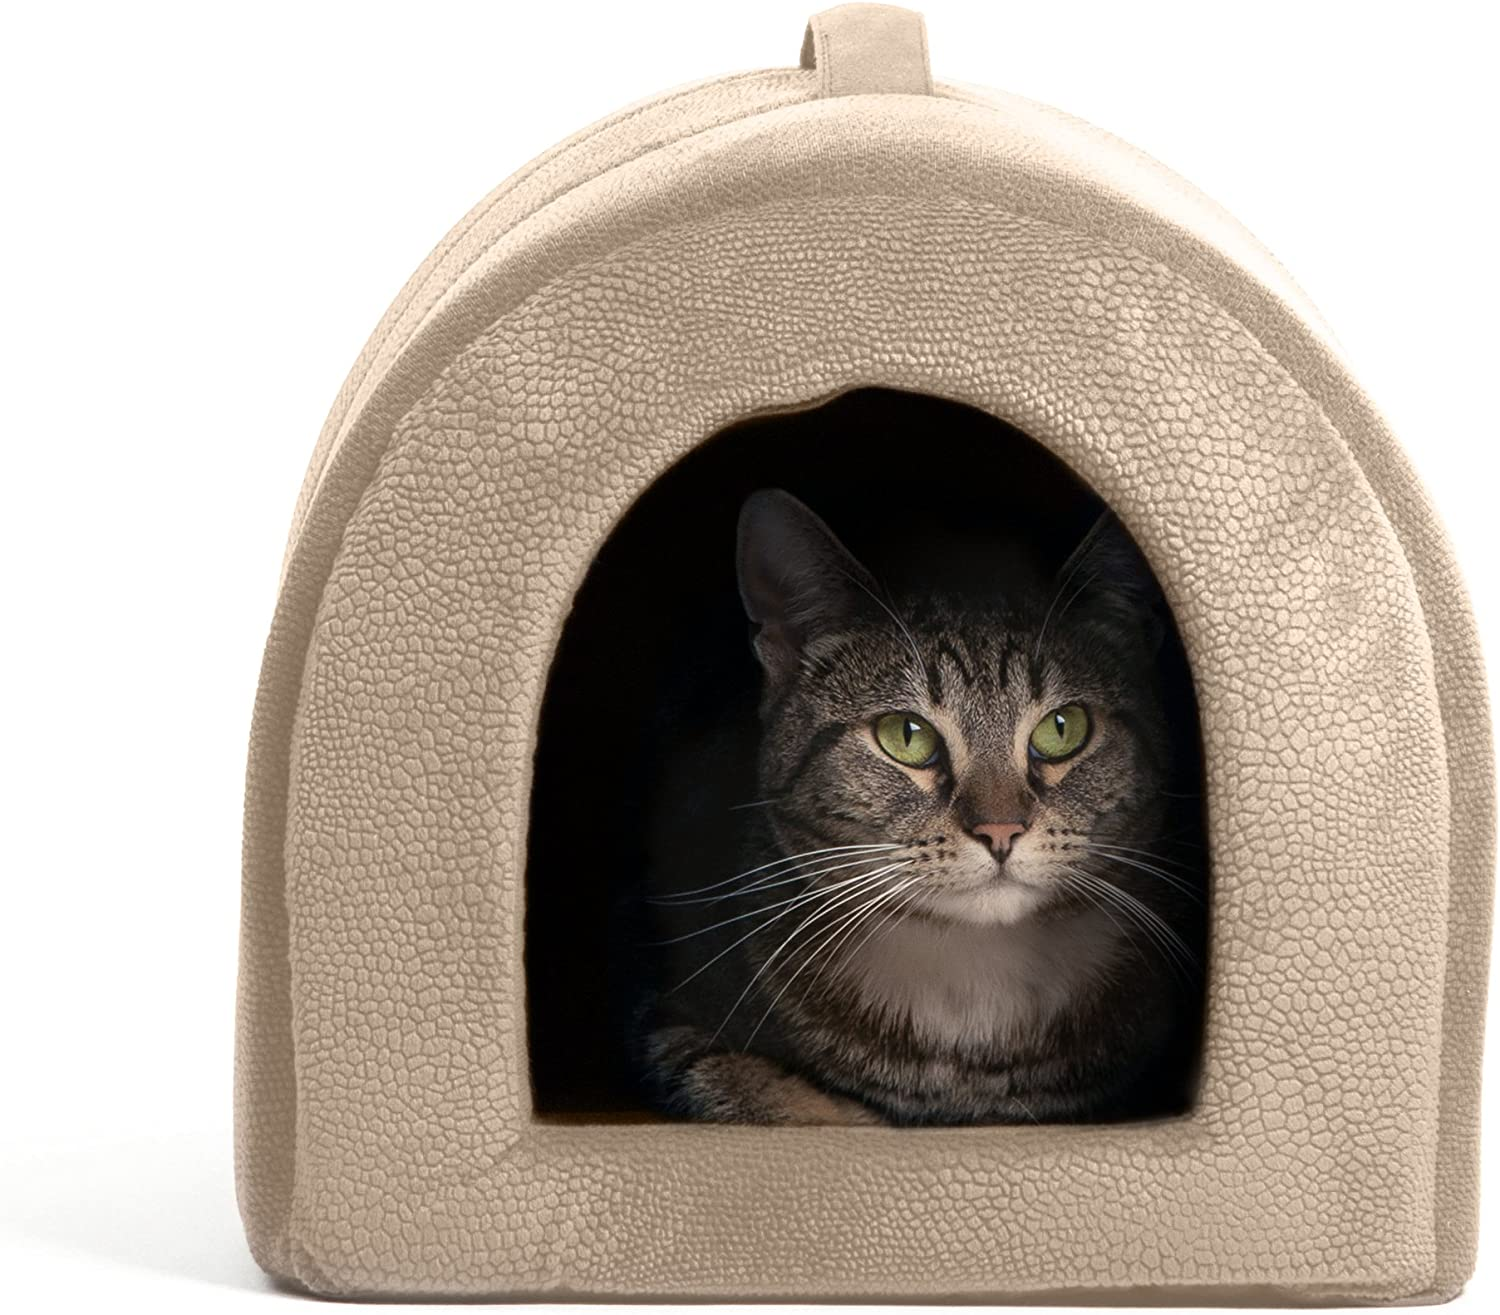 Best Friends by Sheri Pet Igloo Hut, ilan, Wheat  Cat and Small Dog Bed Offers Privacy and Warmth for Better Sleep  17x13x12  for Pets 9lbs or Less